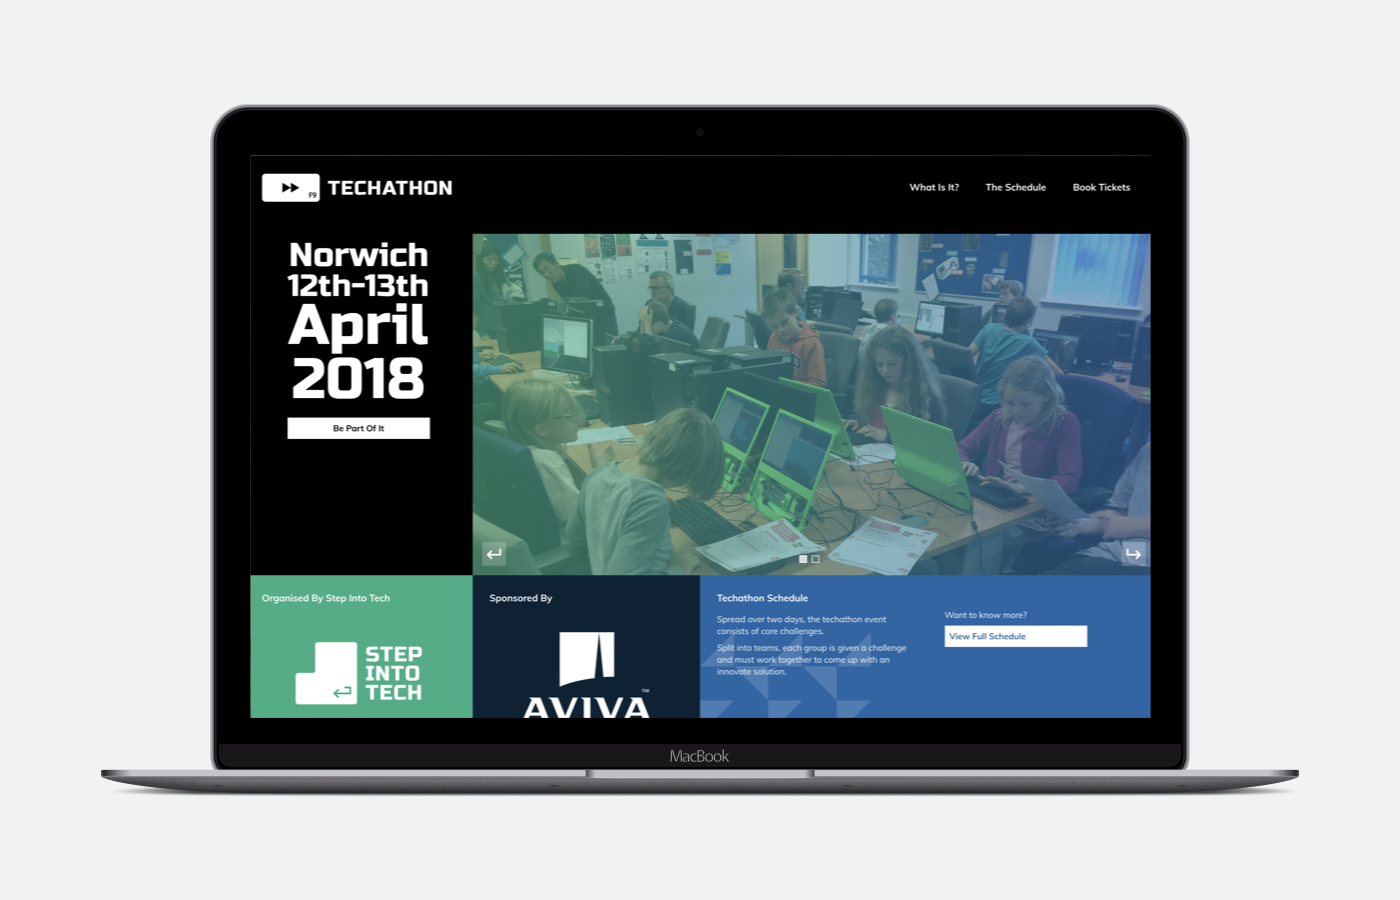 Step Into Techathon